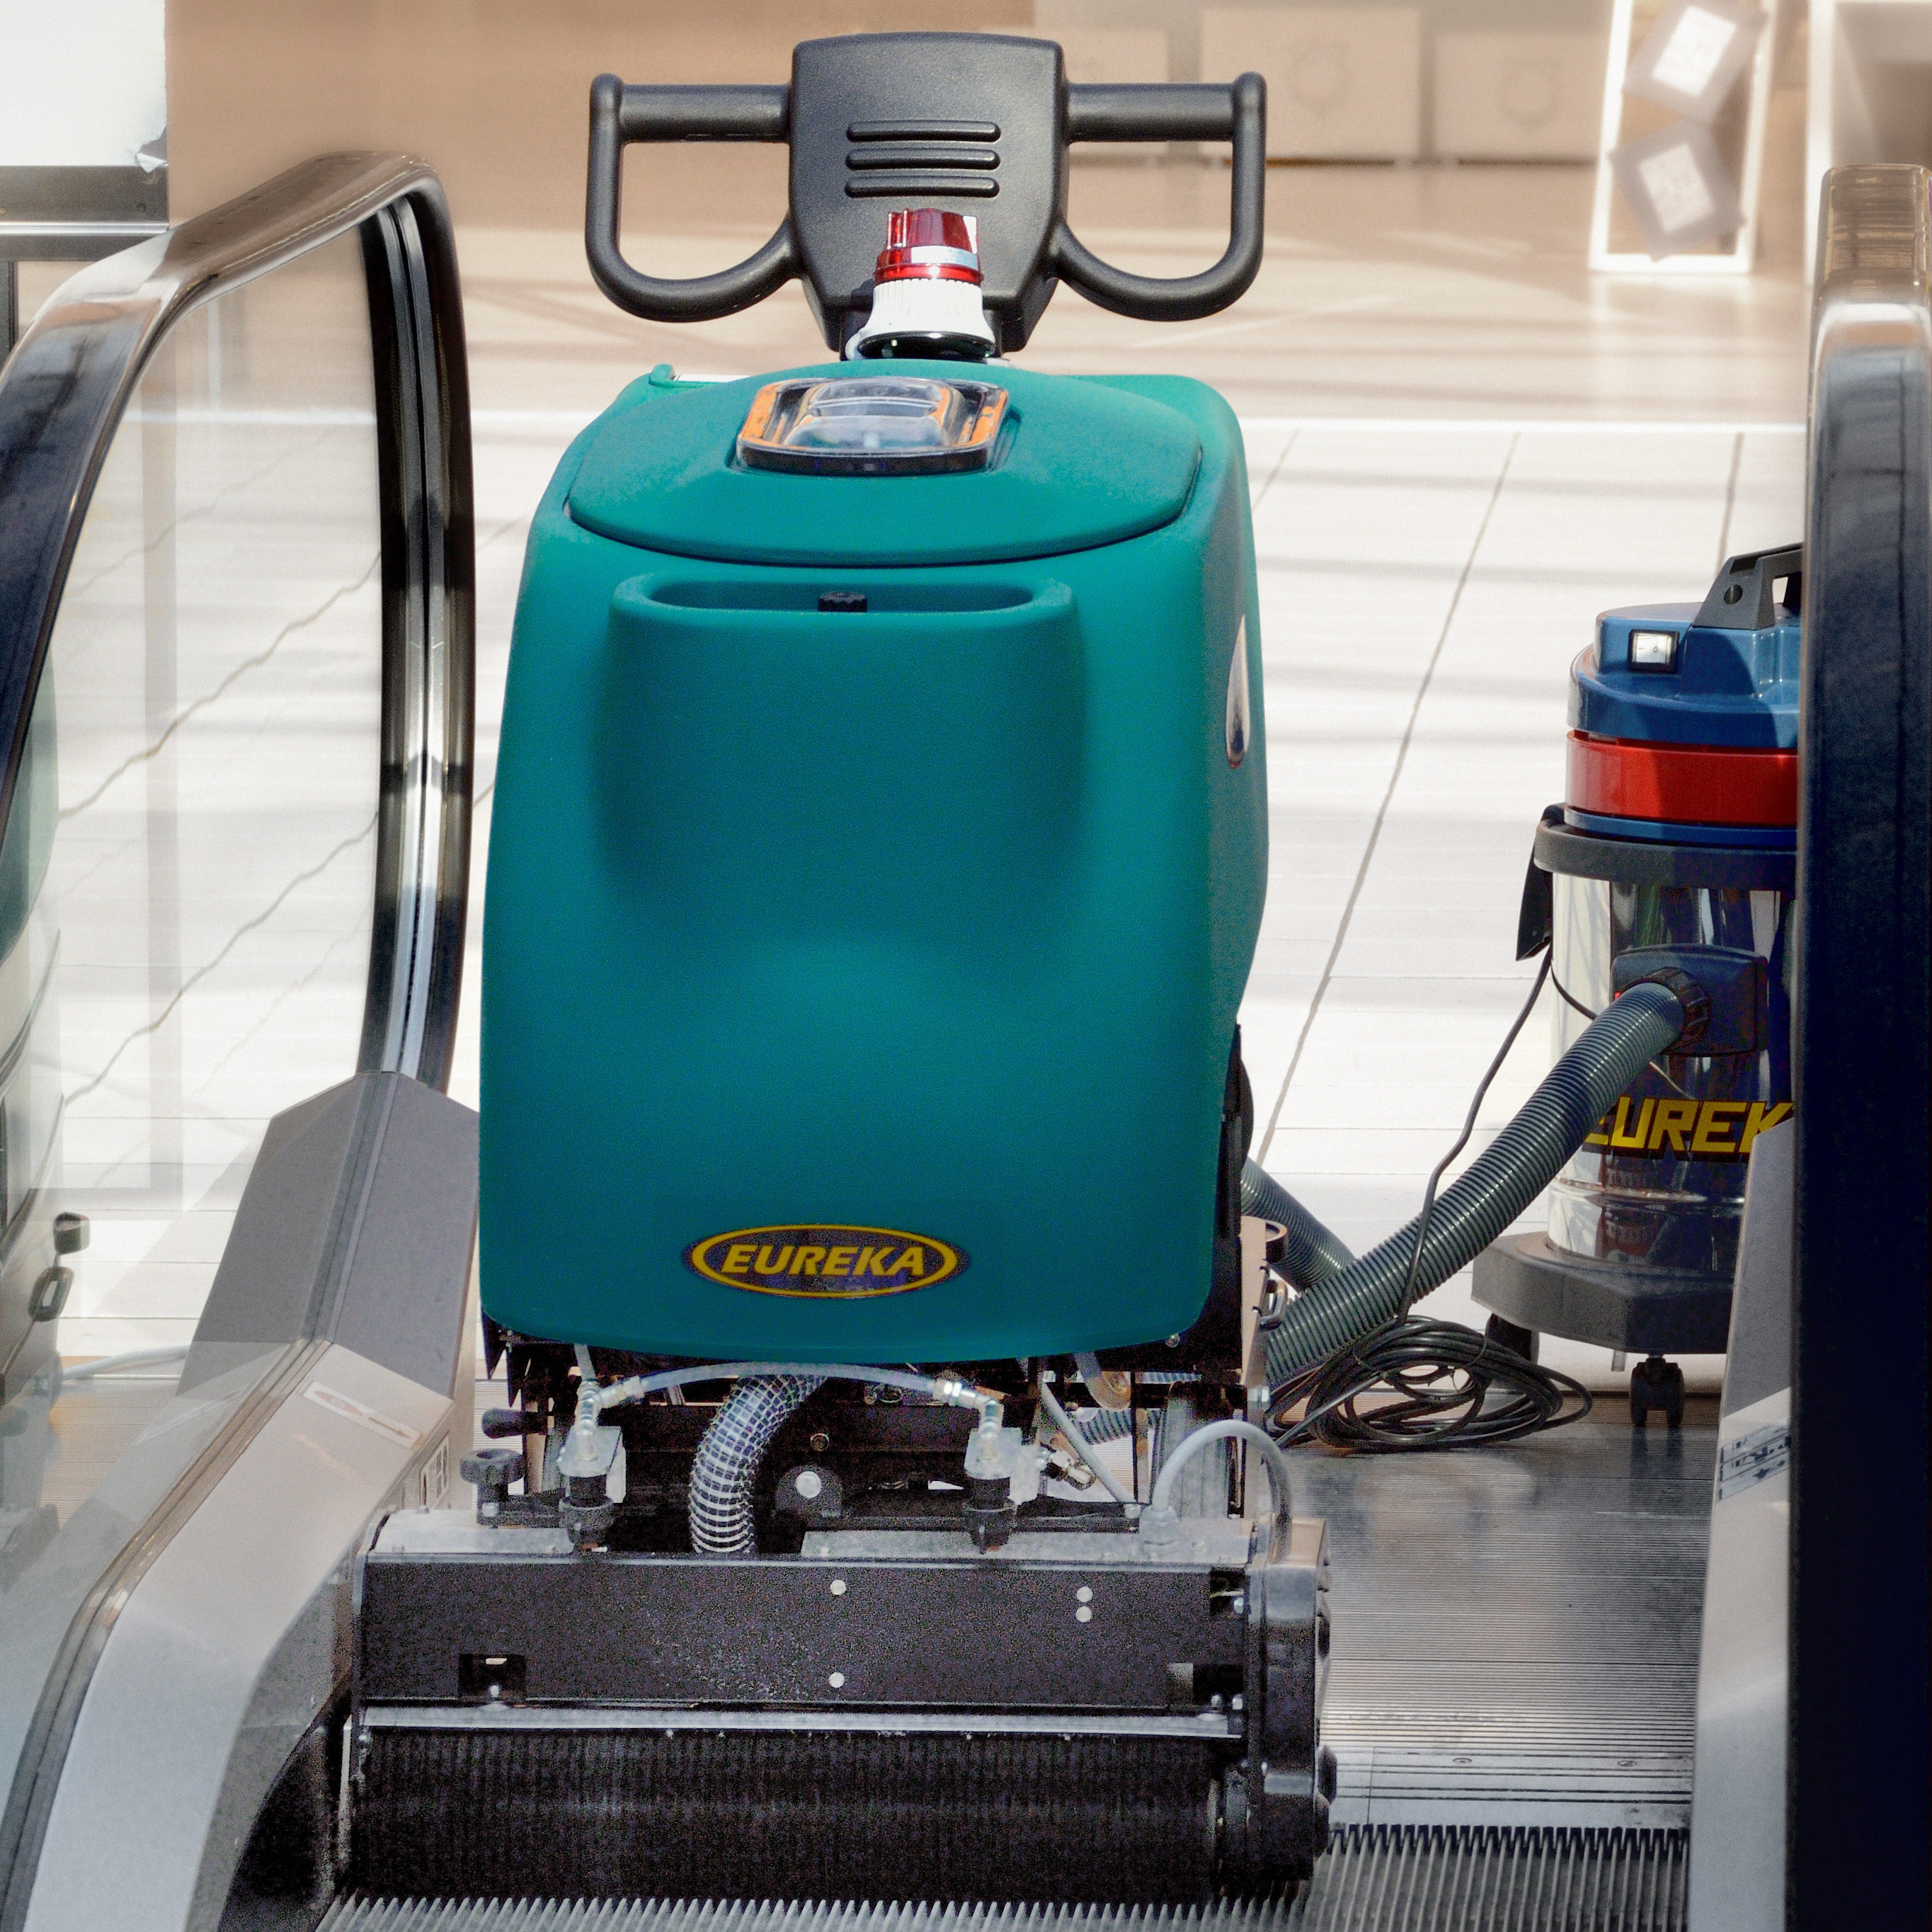 ec professional escalator travelator cleaner machine eureka work automatically ec51 escalator travelator deep cleaner operates independently